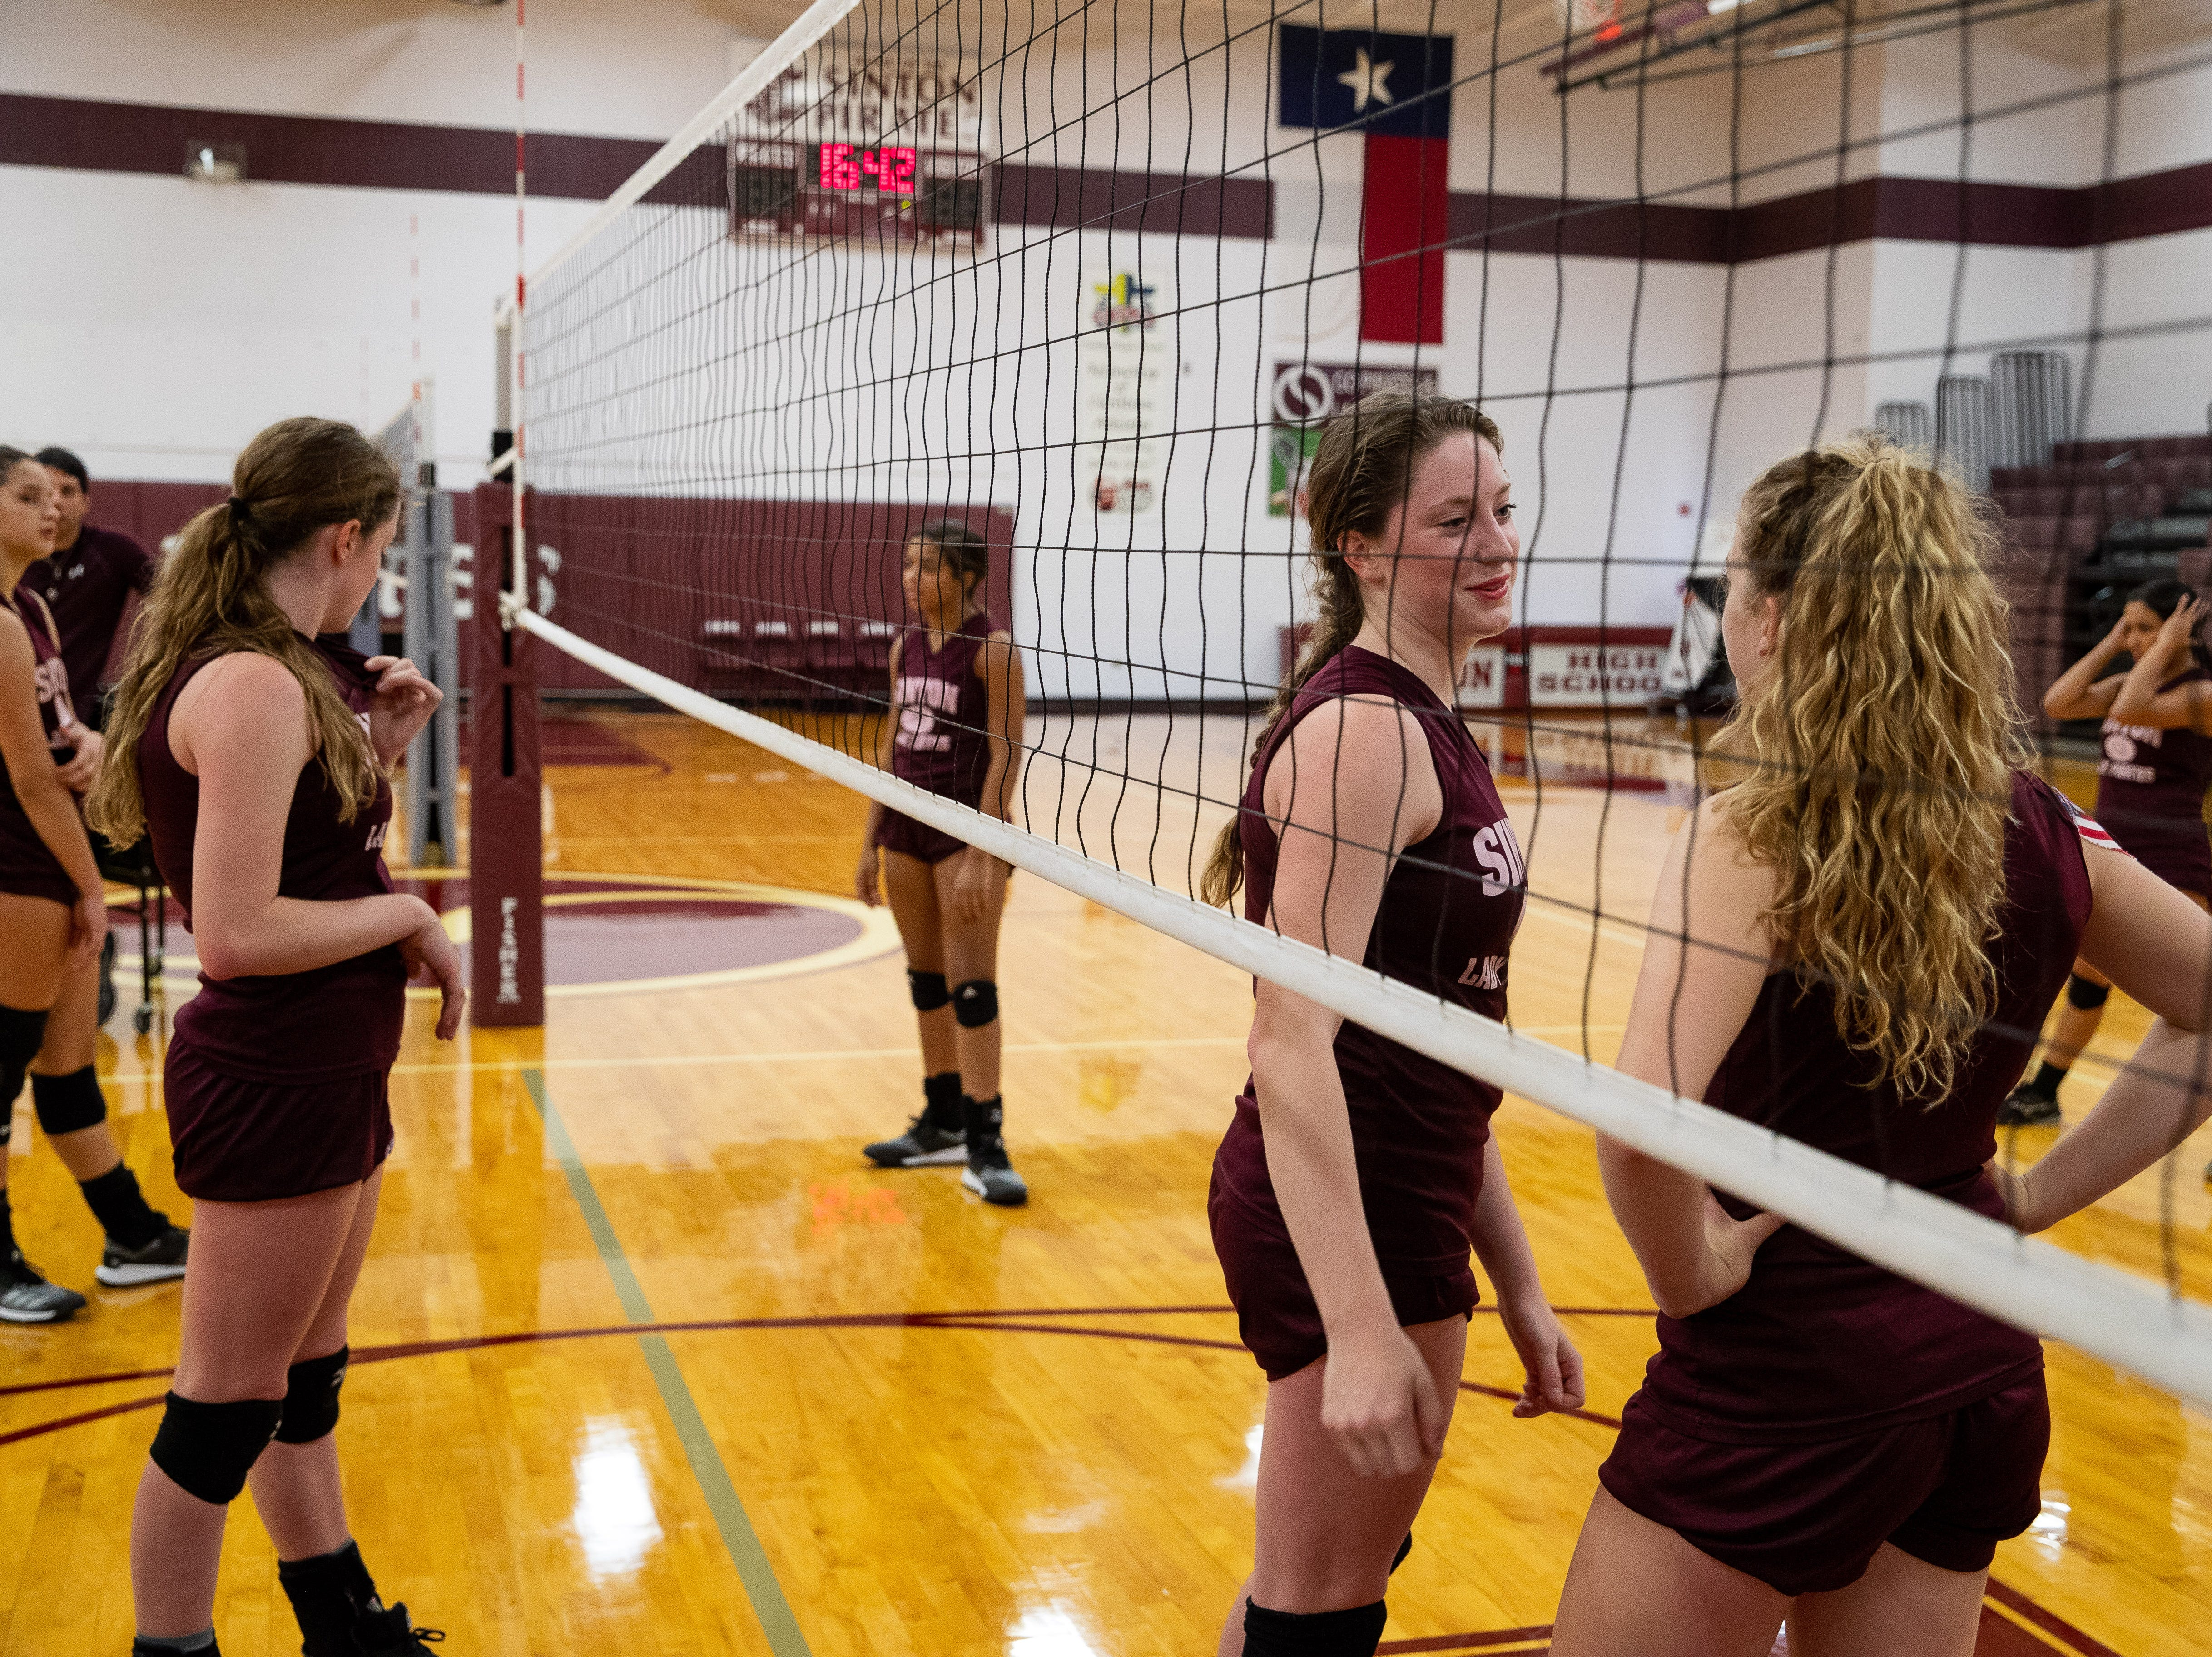 Emma Thomas and her cousin Lela Thomas talk during practice at Sinton High school on Wednesday, Sept. 5, 2018